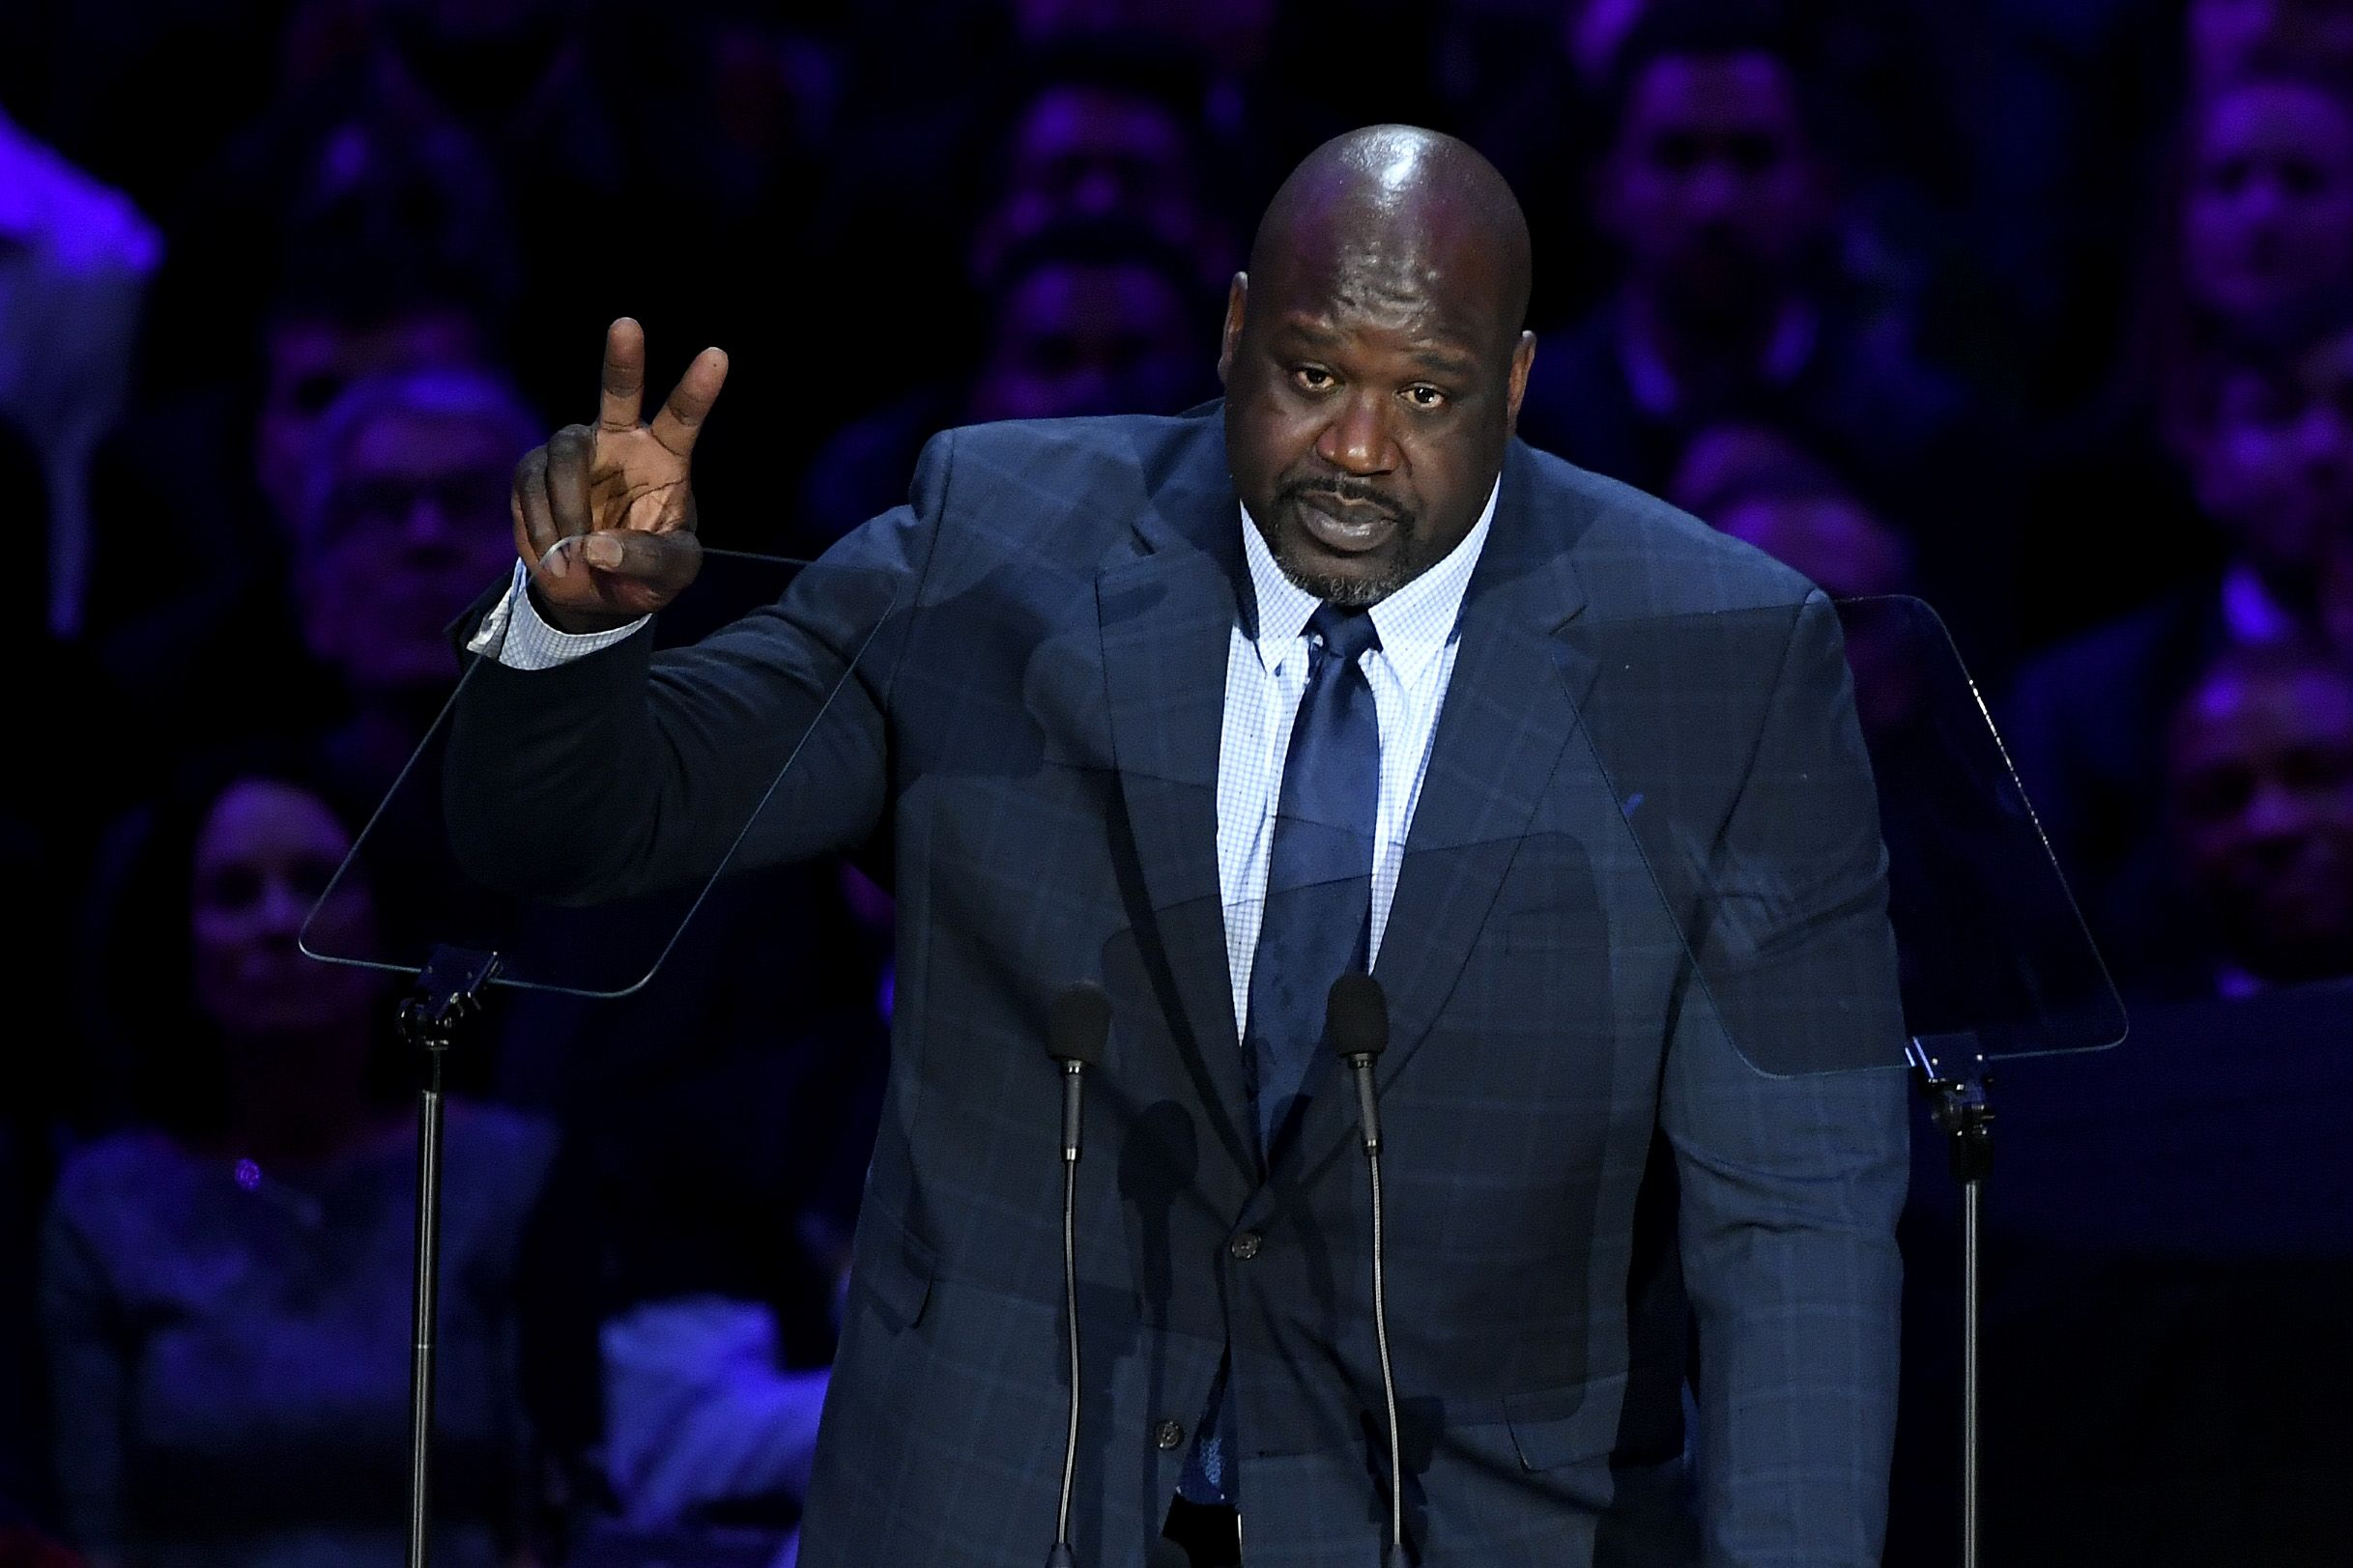 Shaq Brought His Signature Humor—and Heart—to Kobe and Gigi Bryant's Memorial Service